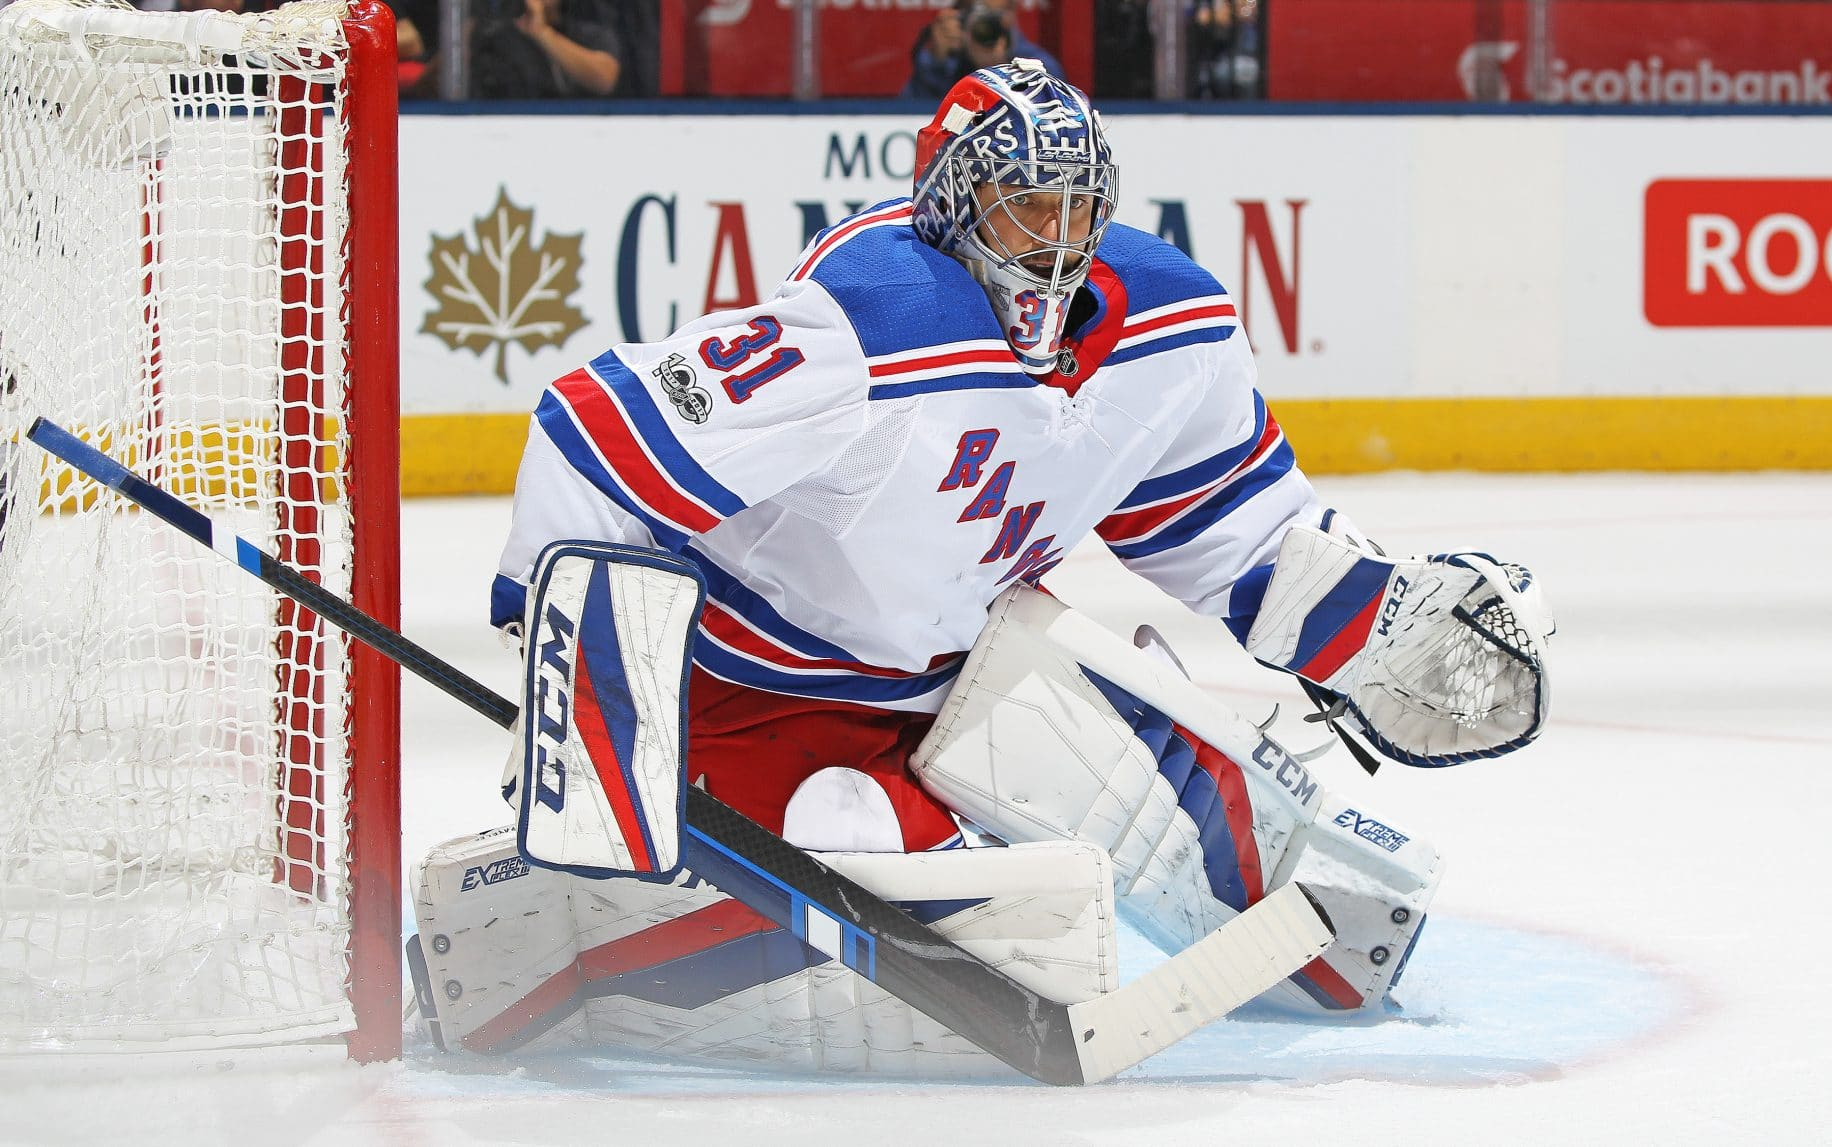 Like it or not, here comes Ondrej Pavelec for the New York Rangers